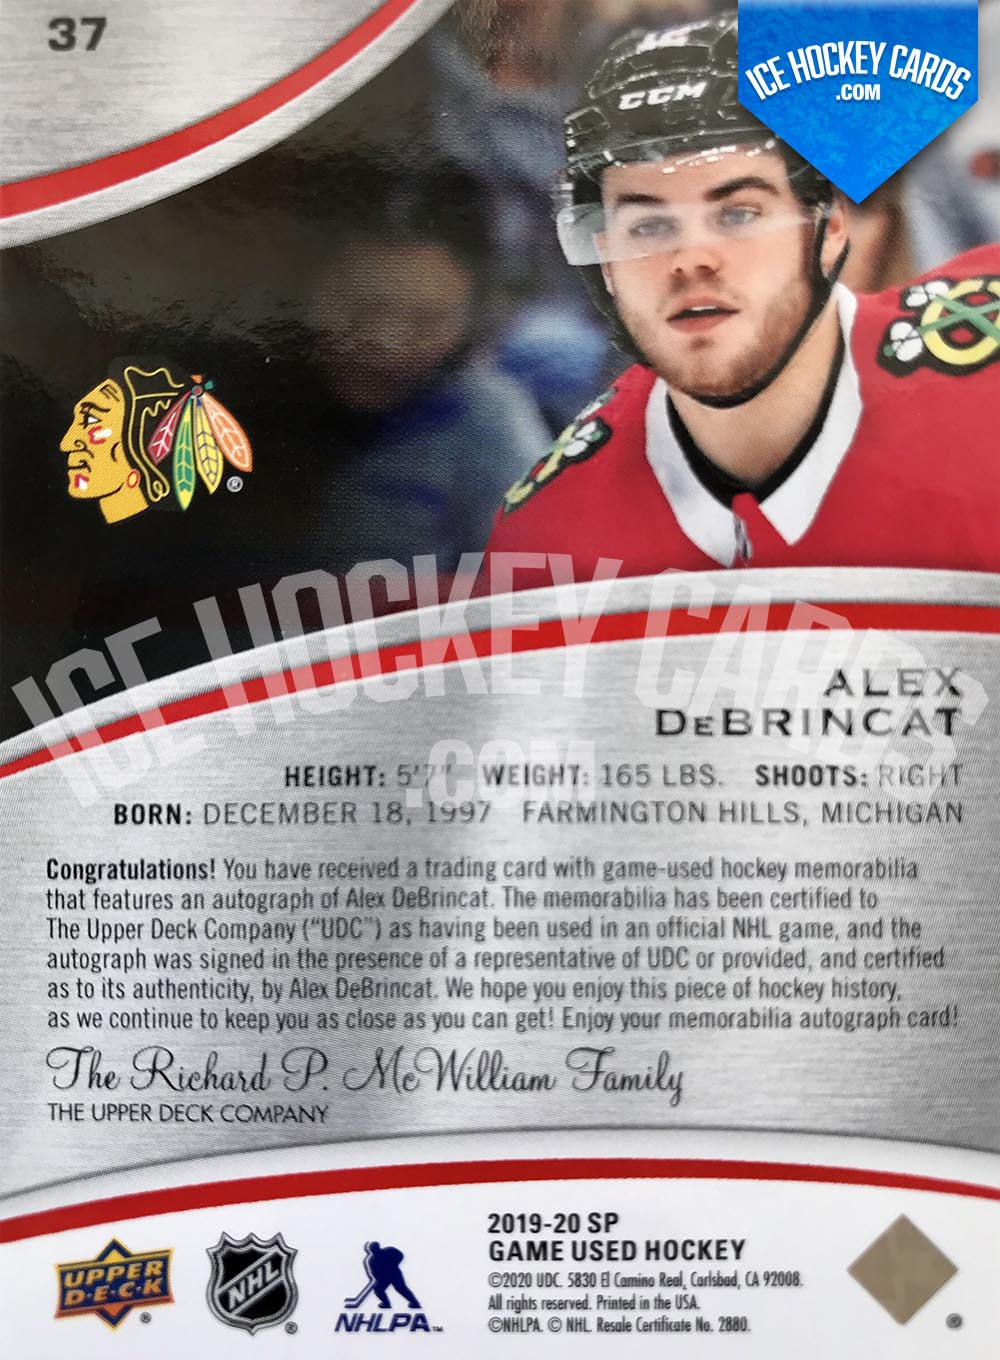 Upper Deck - SP Game Used 2019-20 - Alex DeBrincat Premium Auto Patch # to 15 back